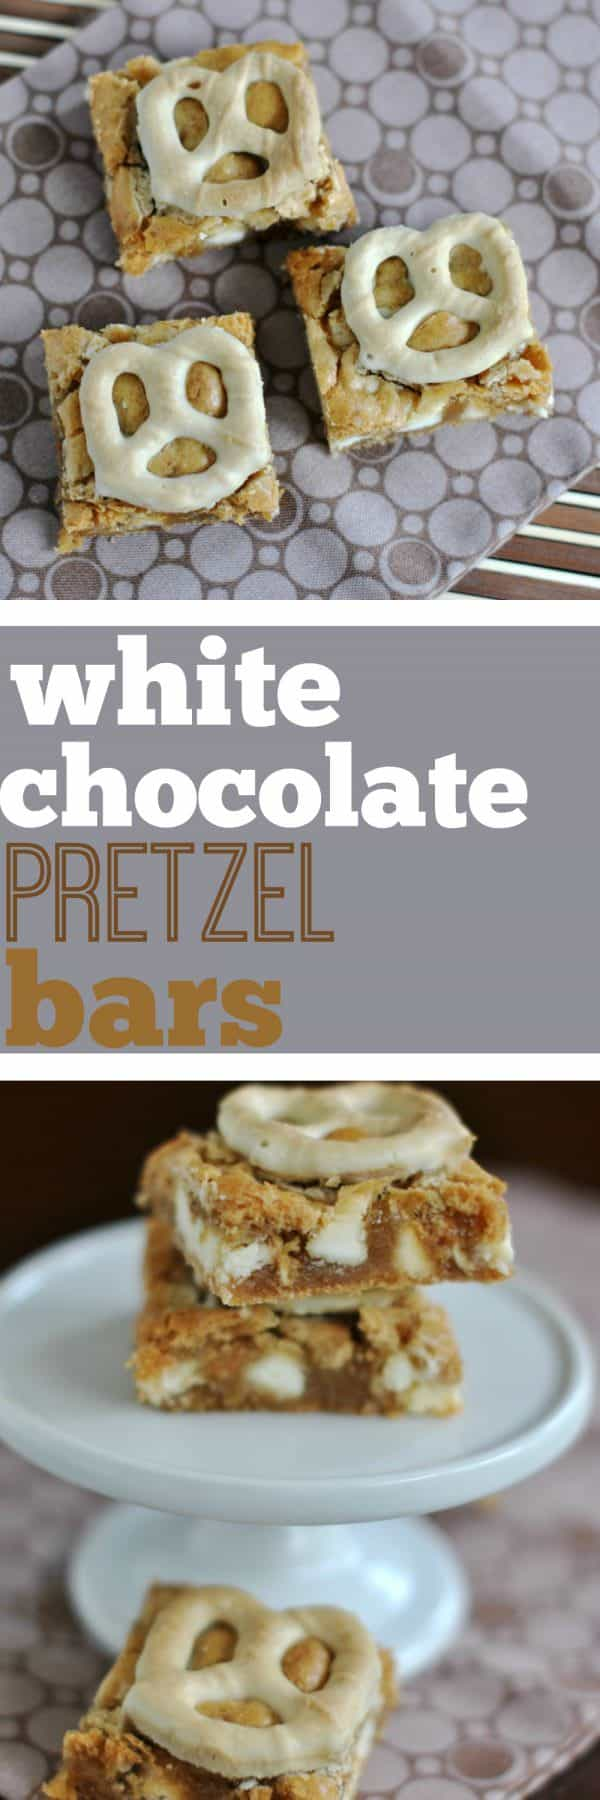 Not sure if you're in the mood for sweet or salty? I've got you covered with these White Chocolate Pretzel Bars!